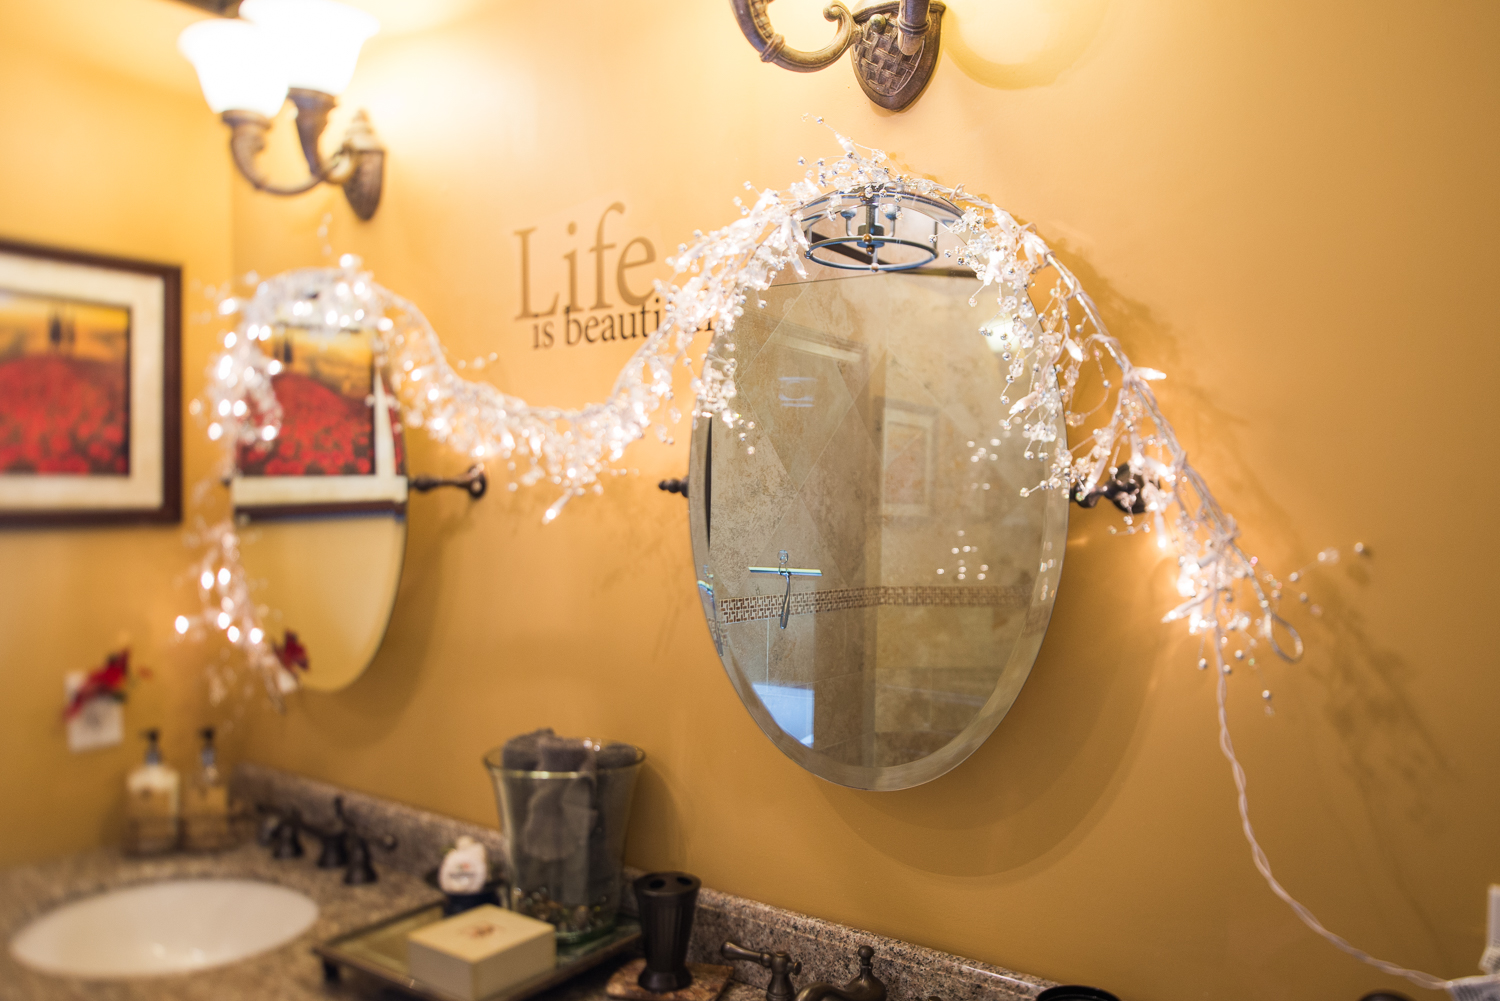 2 mirrors on a wall in bathroom